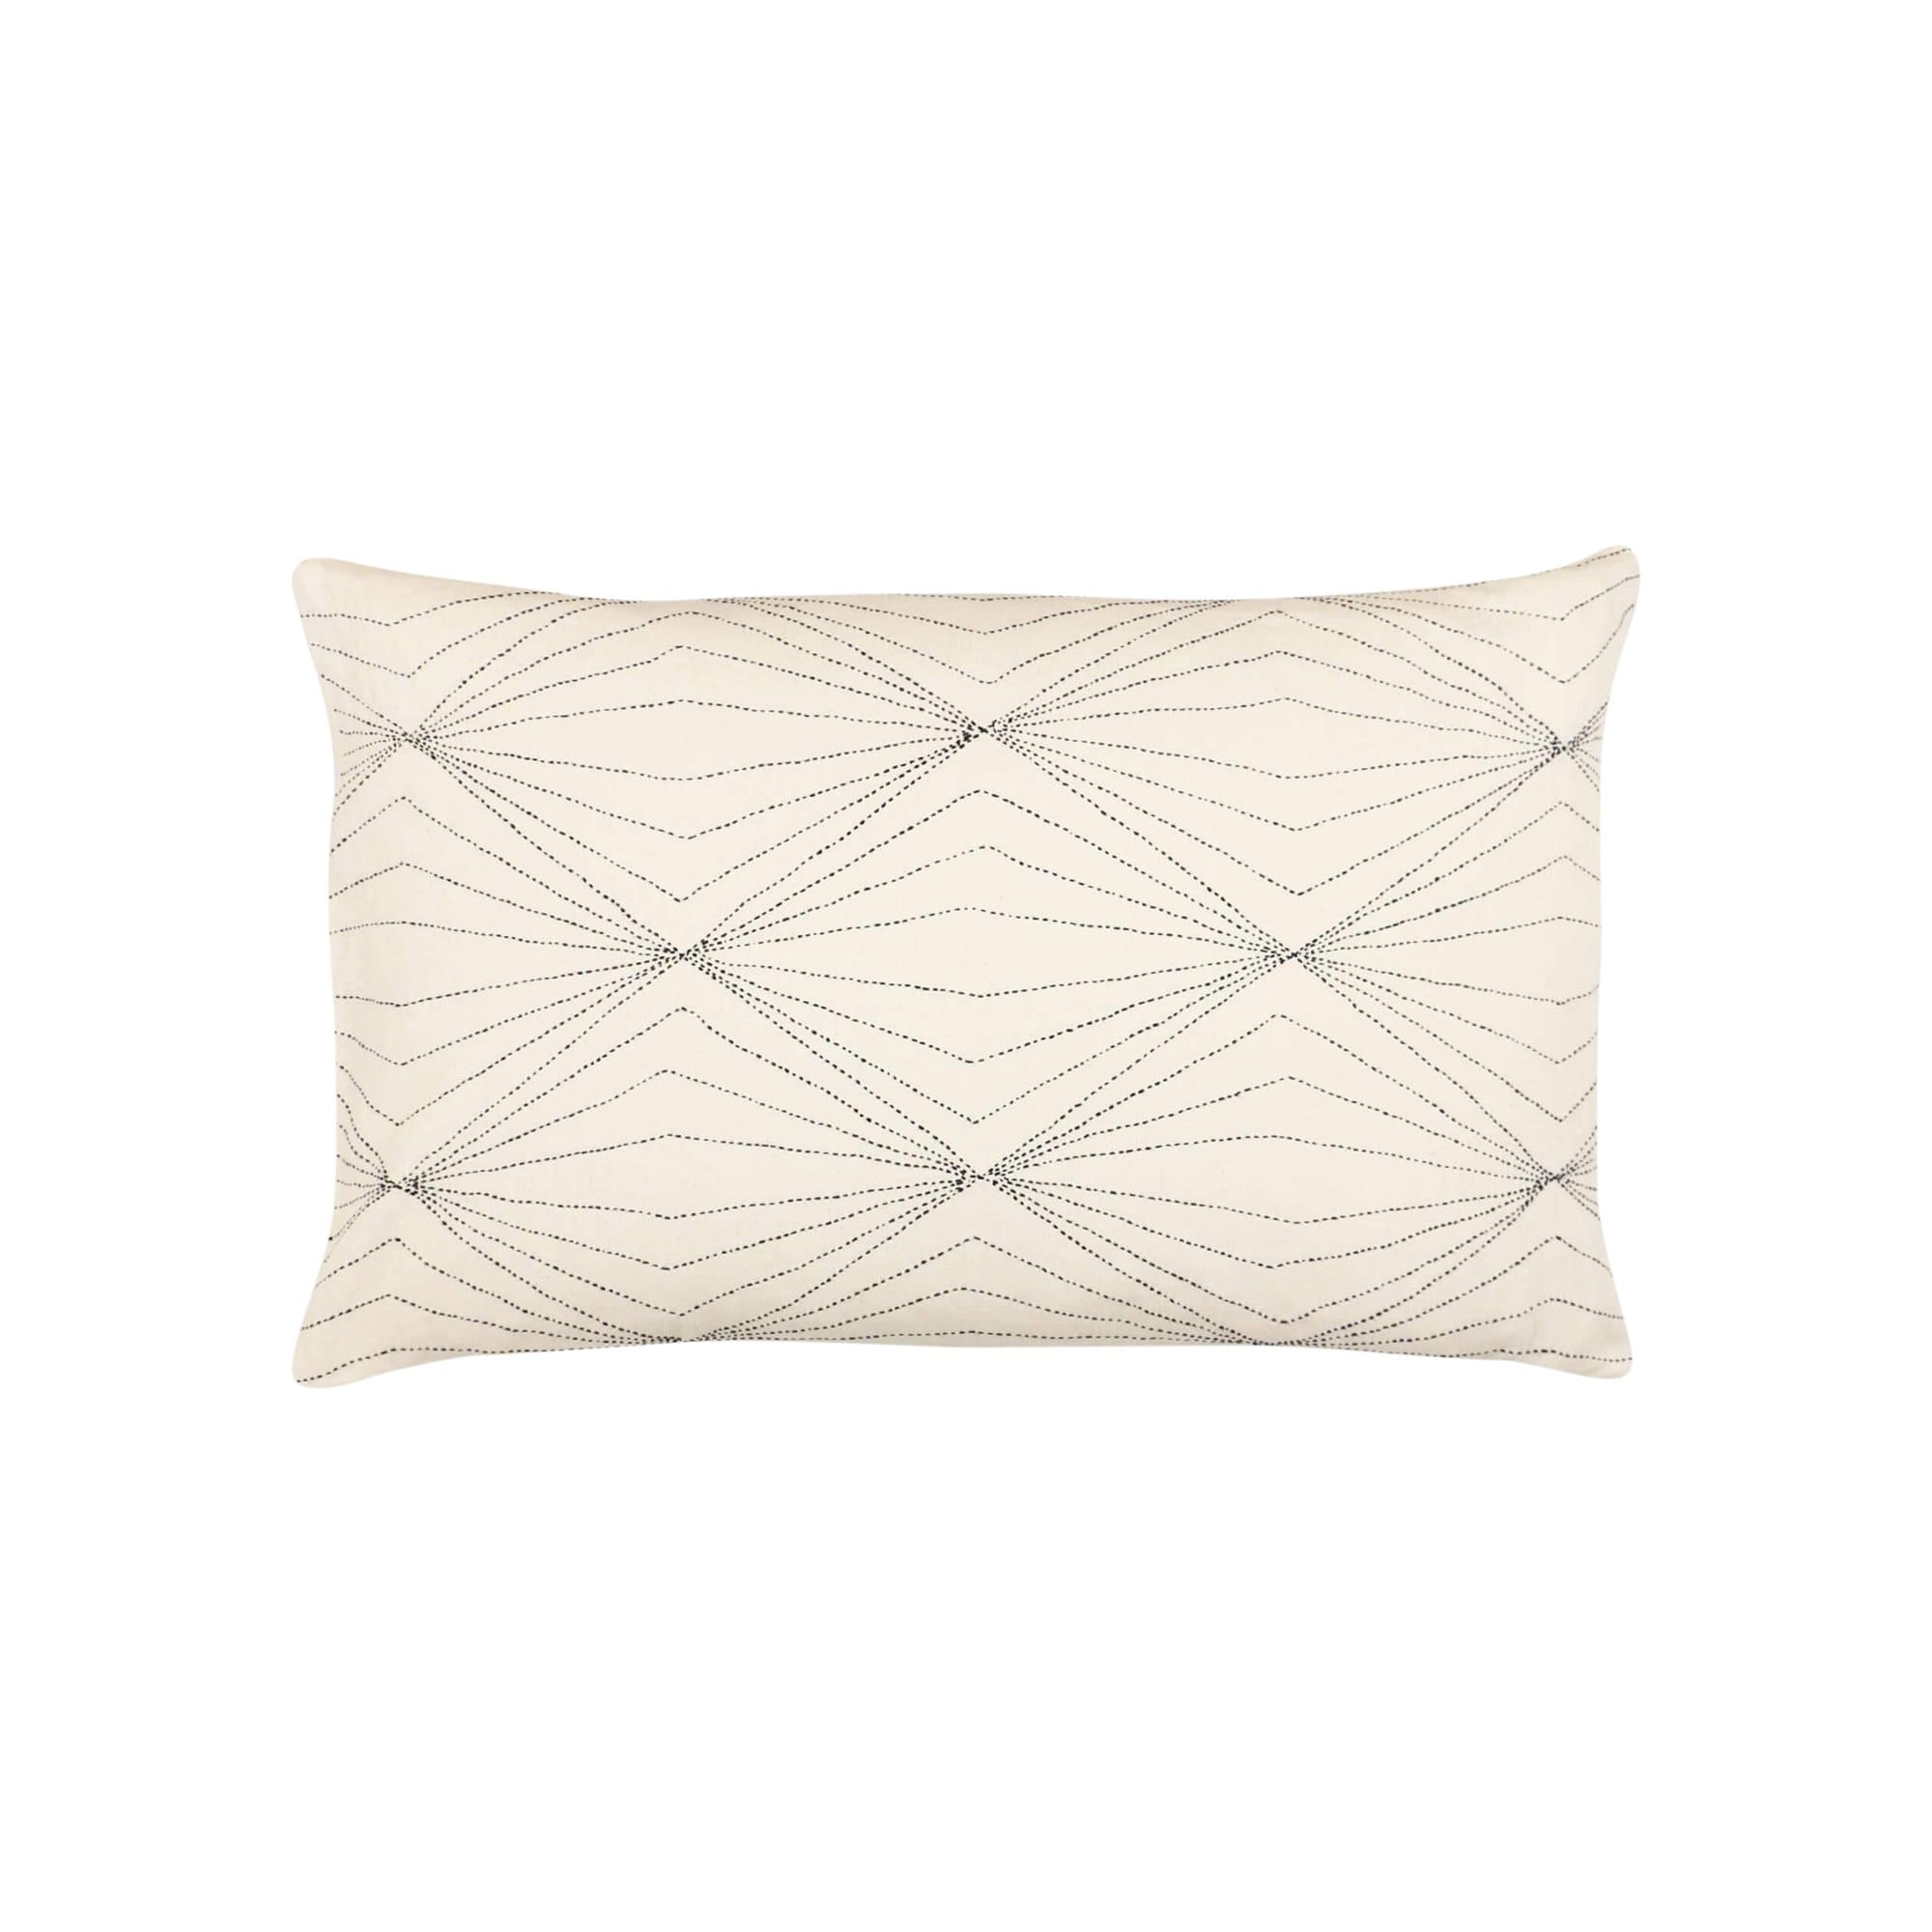 Anchal Project Cushions + Throws Bone Prism Lumbar Pillow